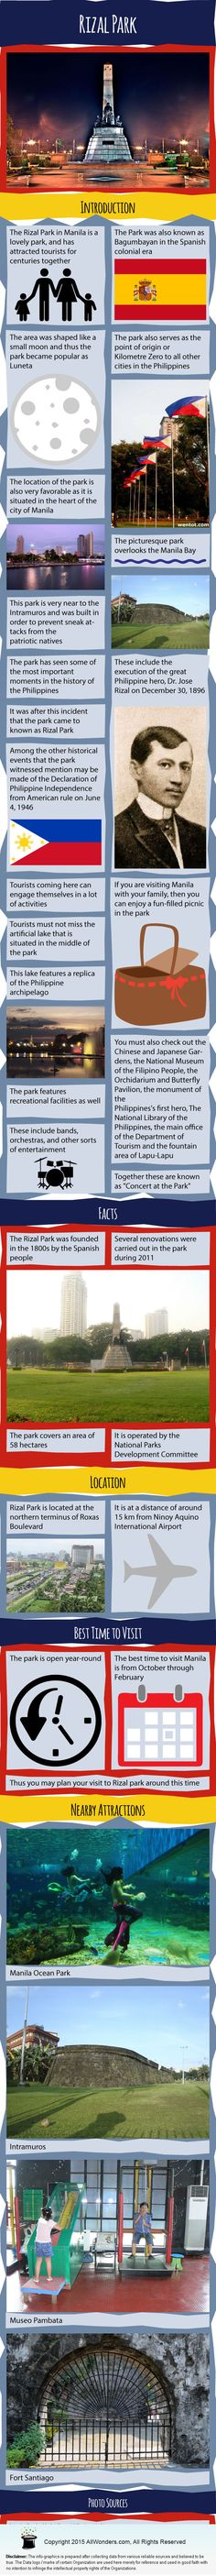 Rizal Park Infographic showing facts and information about Rizal Park in Manilla, Philippines. Also know about its Best time to visit, nearby attractions and more.